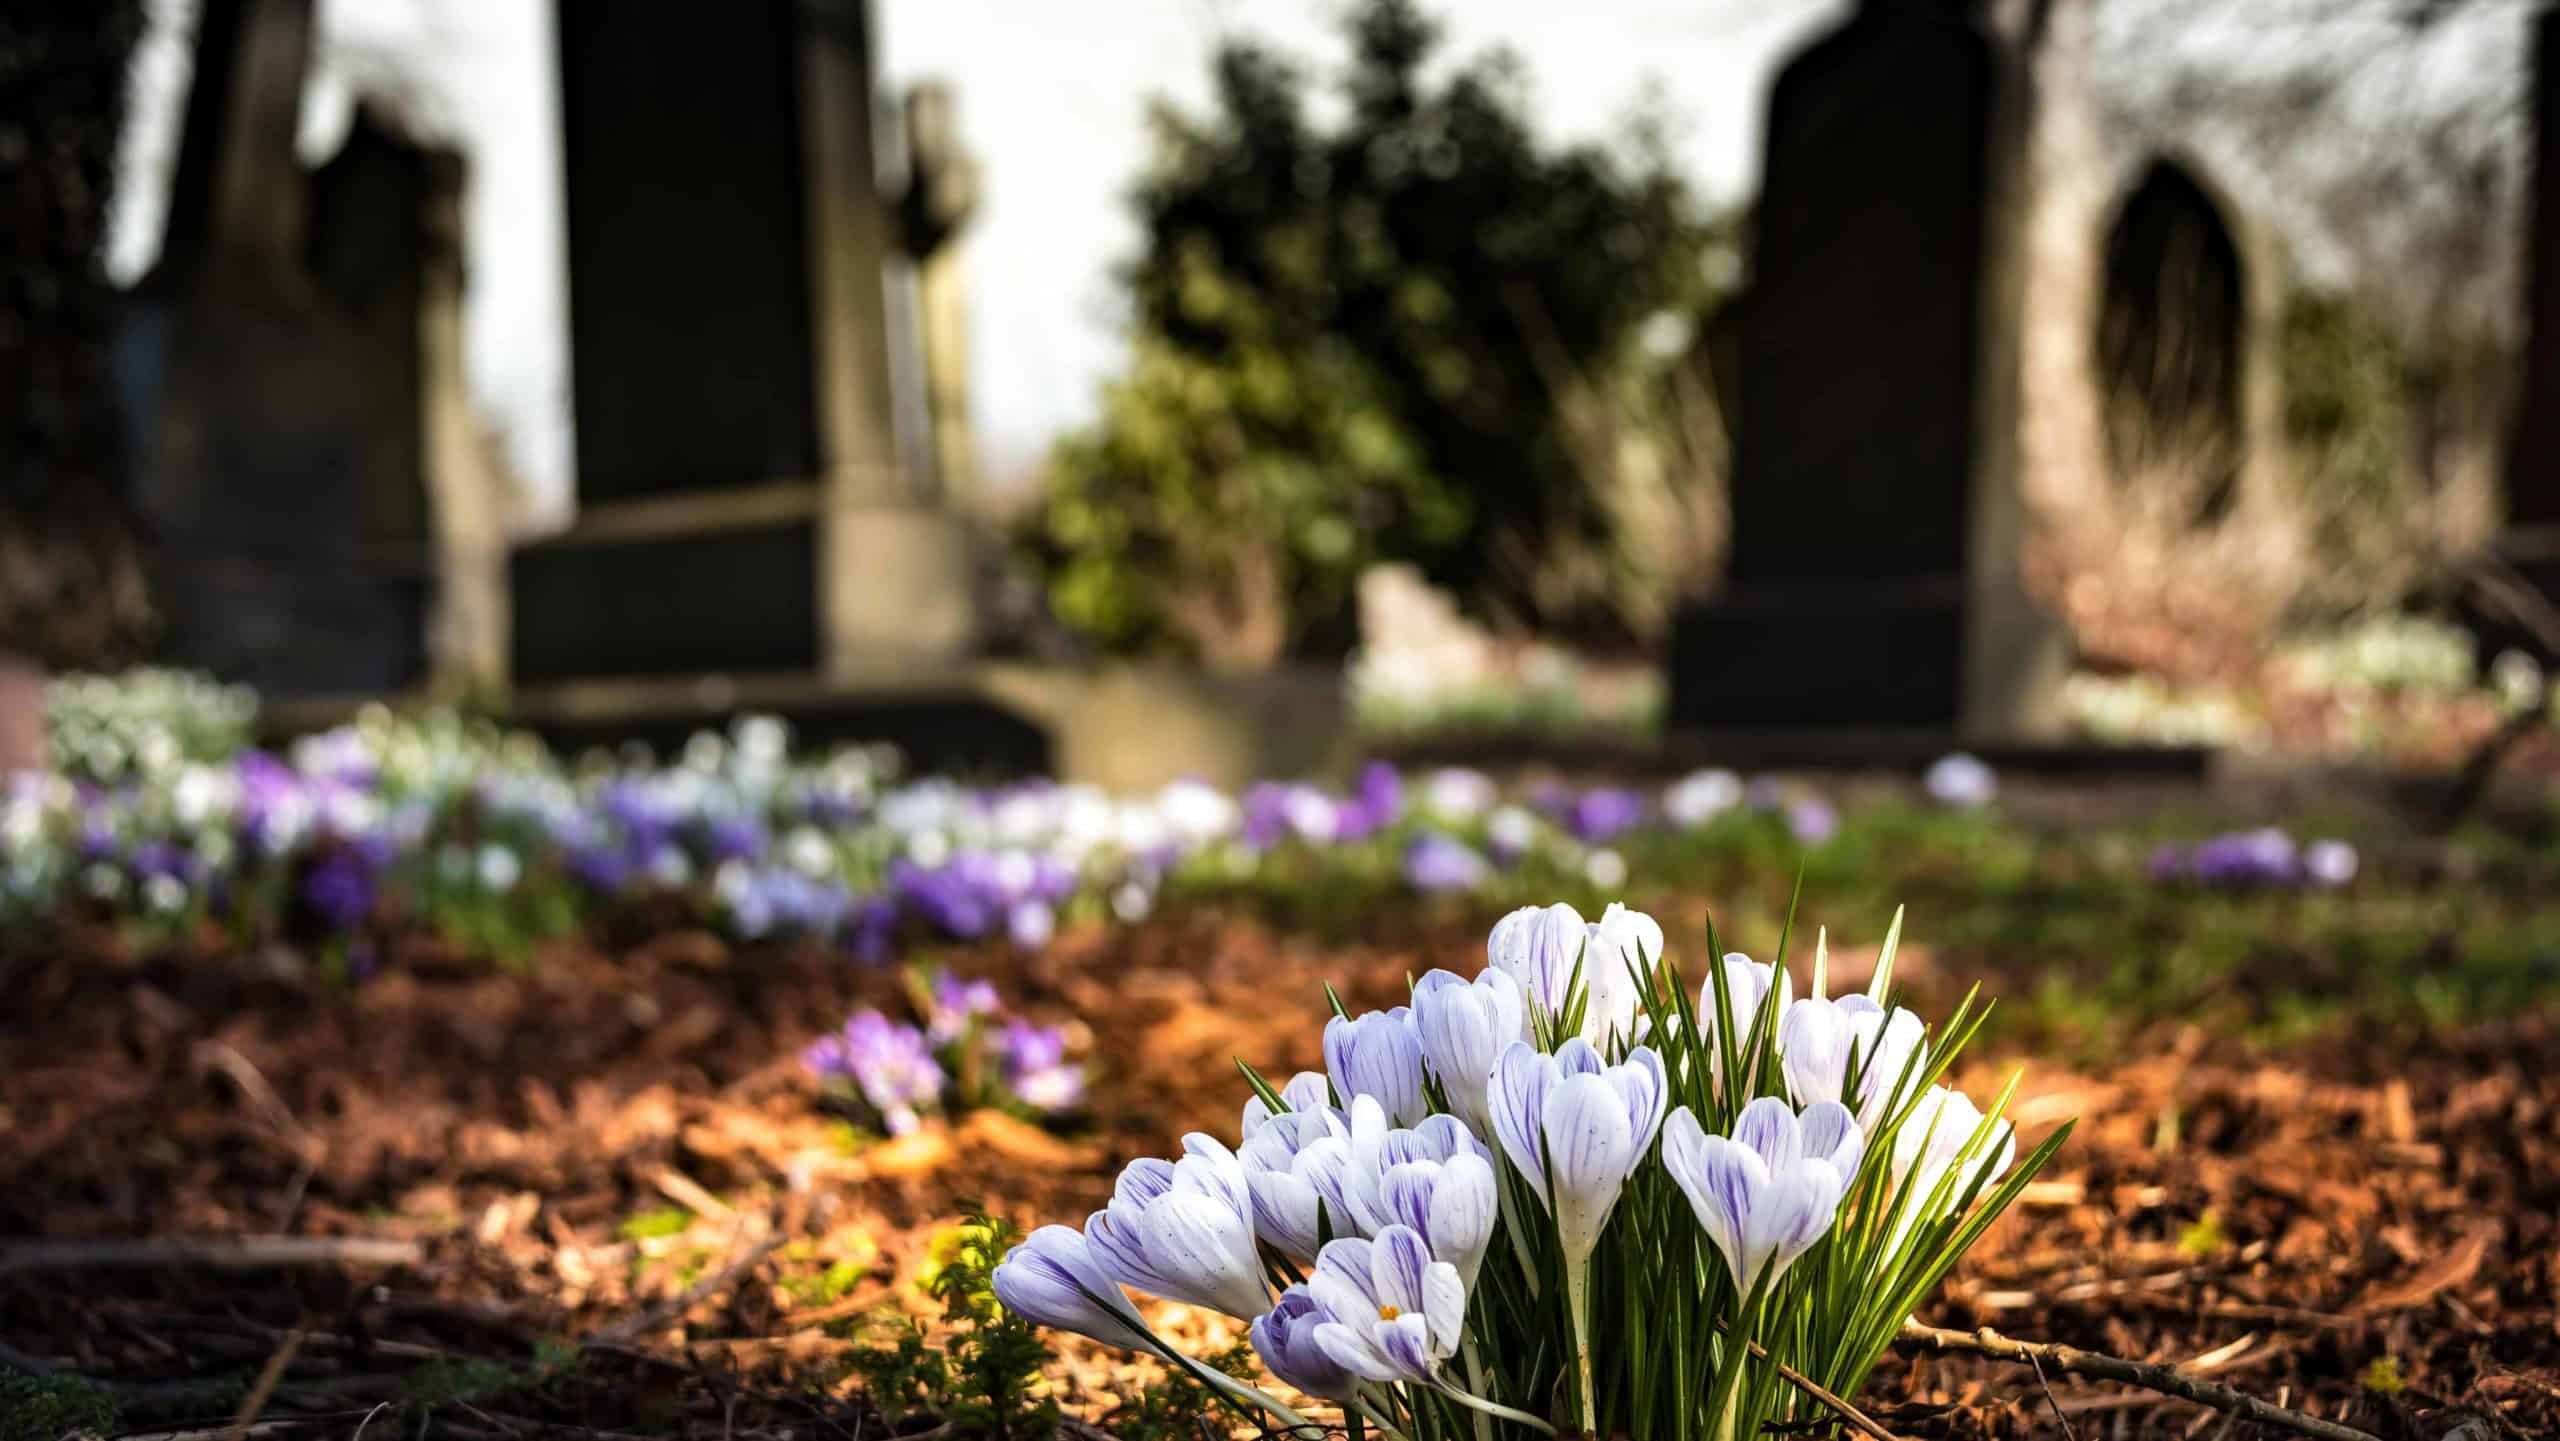 Flowers blooming with headstones in the background.